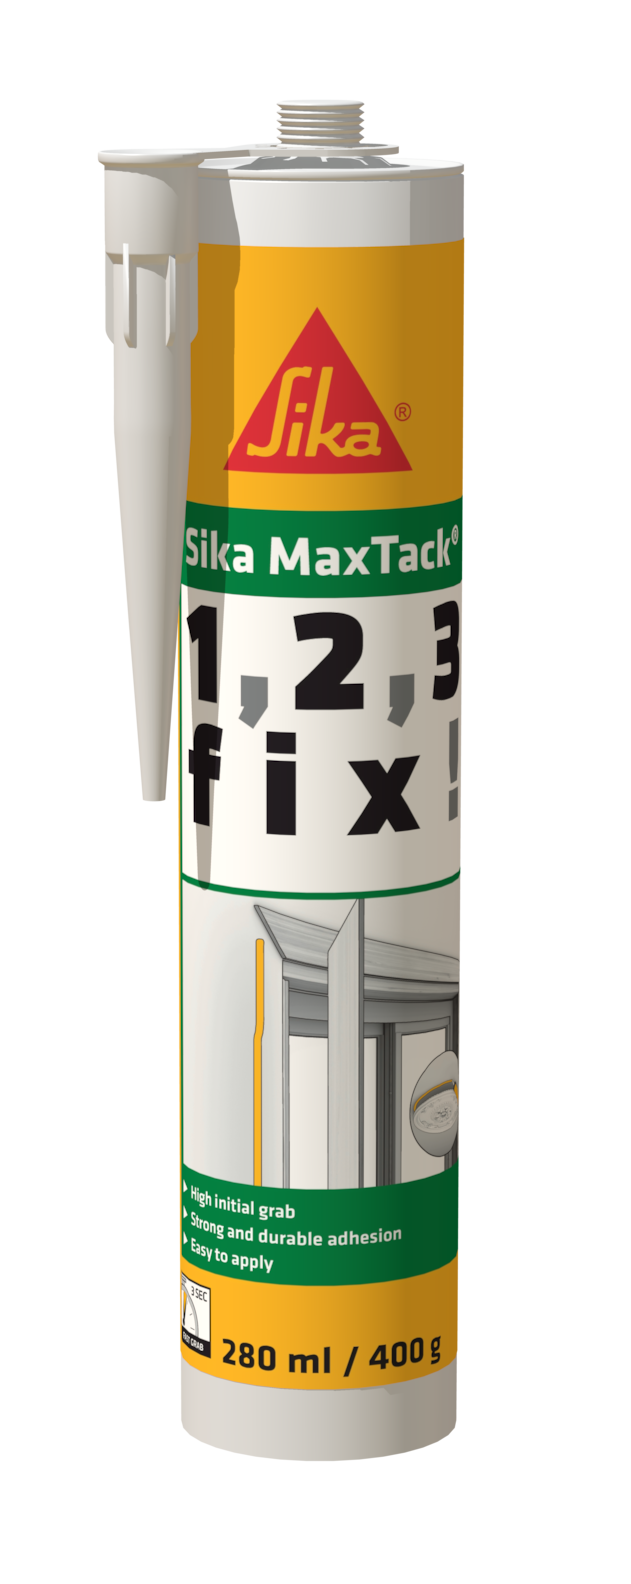 Sika MaxTack 1,2,3 FIX 280ml 400g 2017